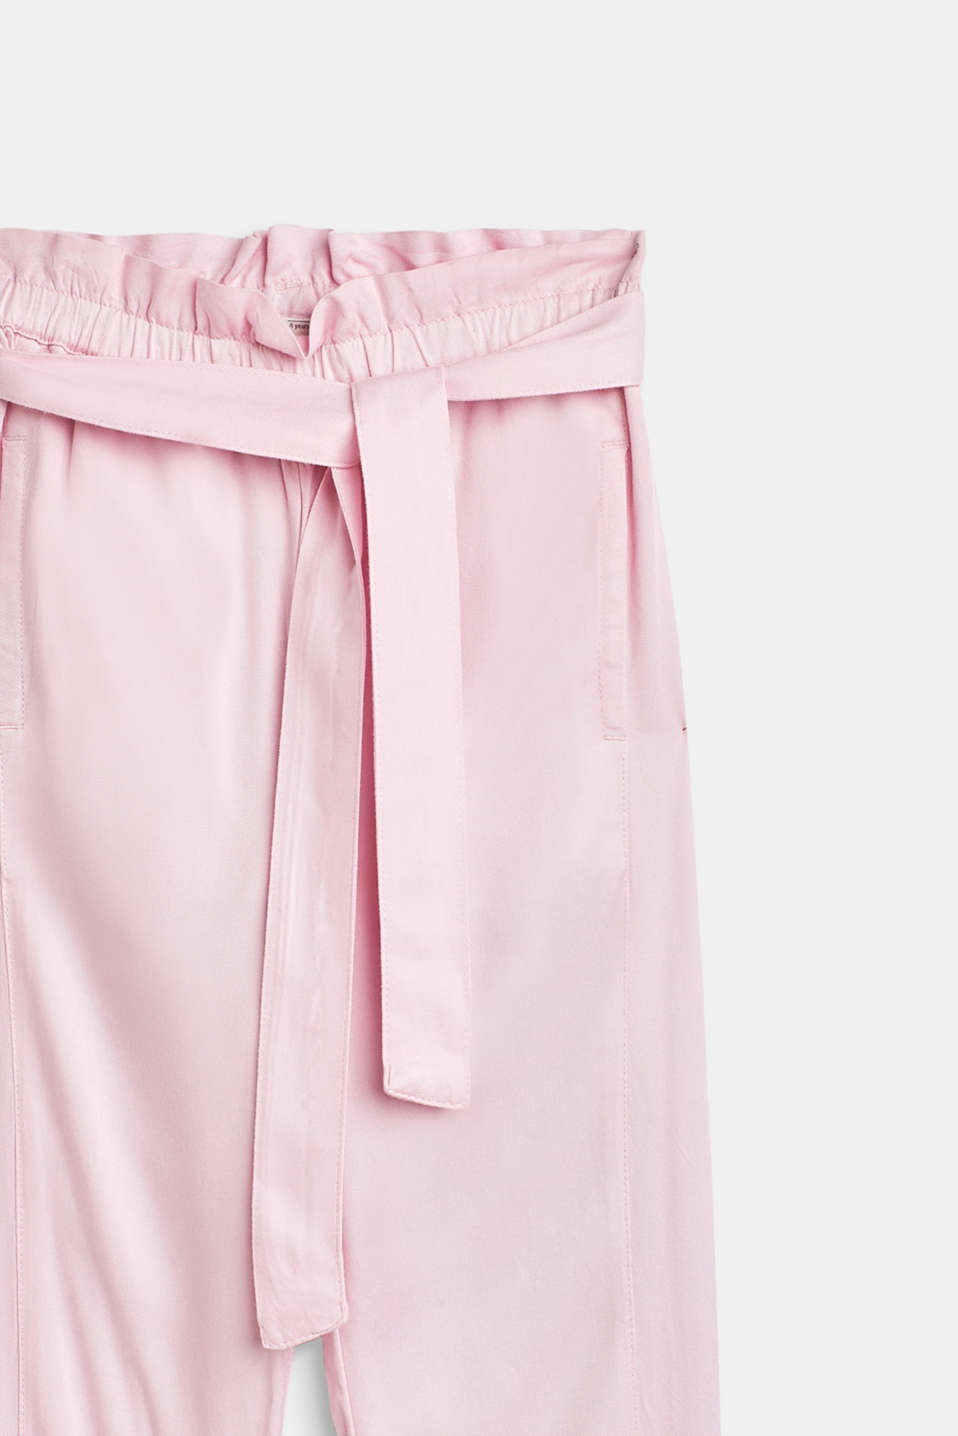 Flowing trousers in a paper bag style, BLUSH, detail image number 2